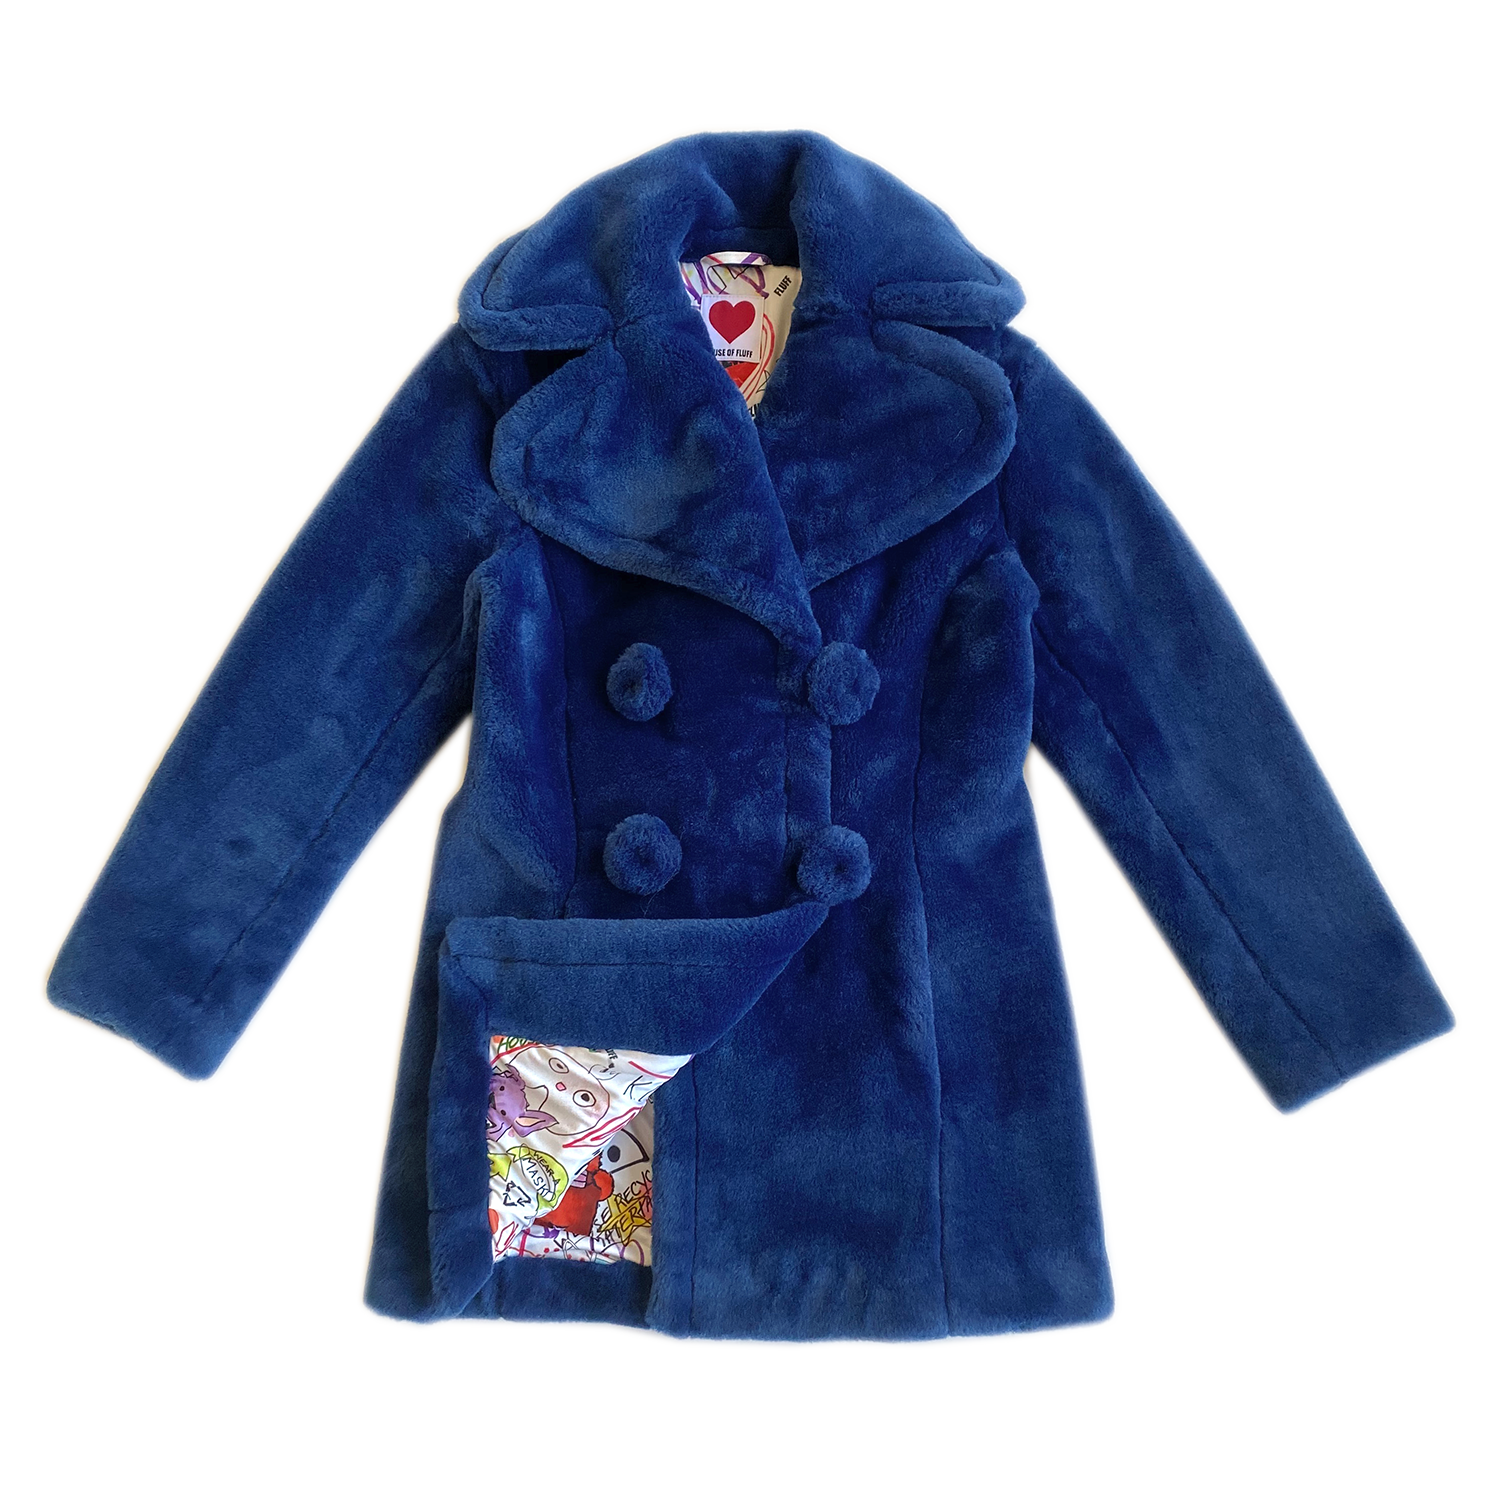 products/biofur_bluepeacoat_front_open.png